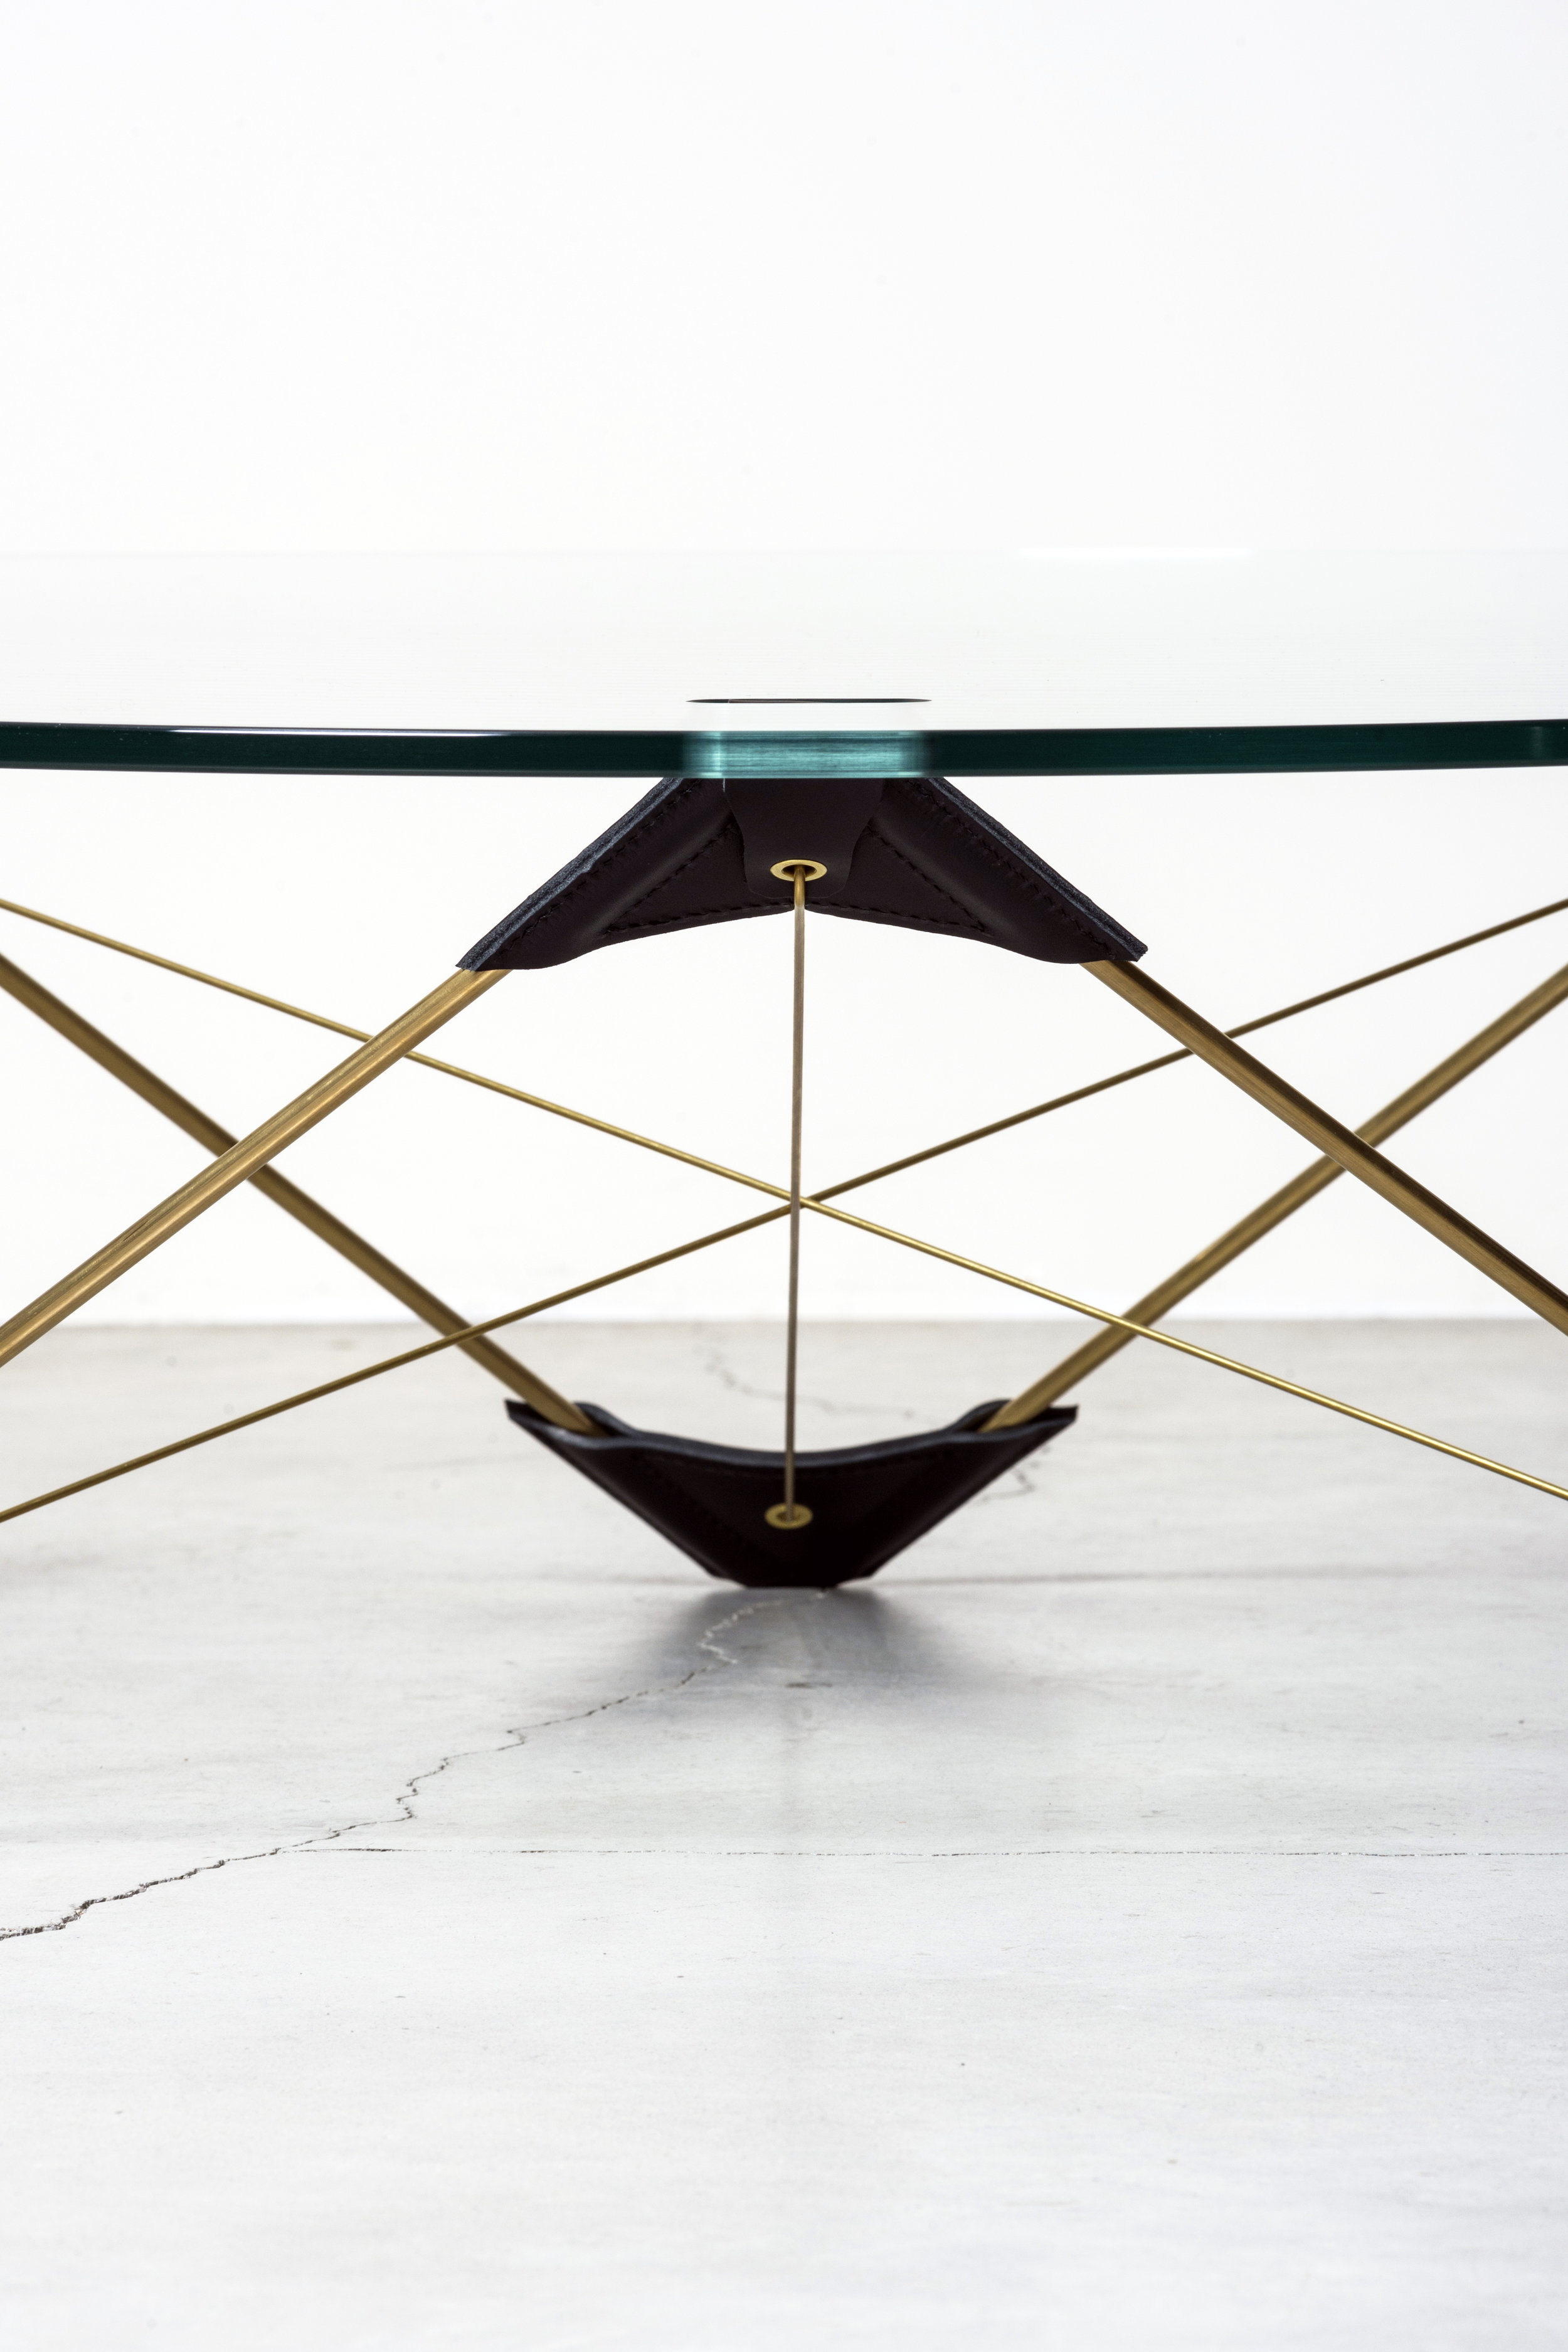 Detail of  Reconvexo  table designed by Atelier LAVIT ©  Daniele Lodice